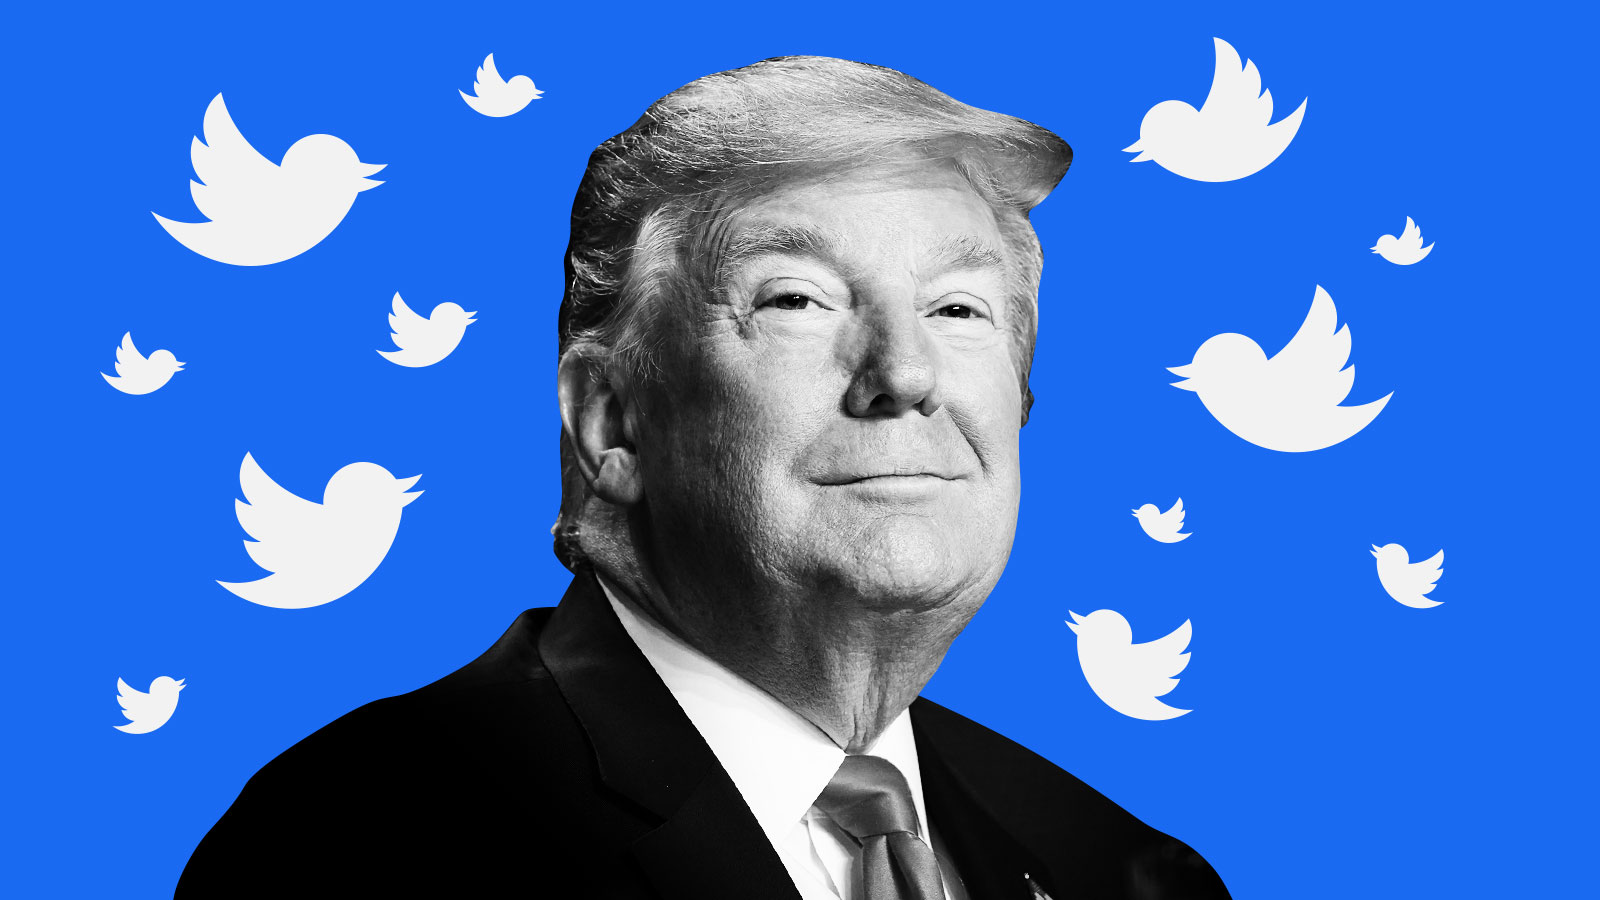 Twitter's rigid fact-check rules allow Trump to continue spreading false information about the election